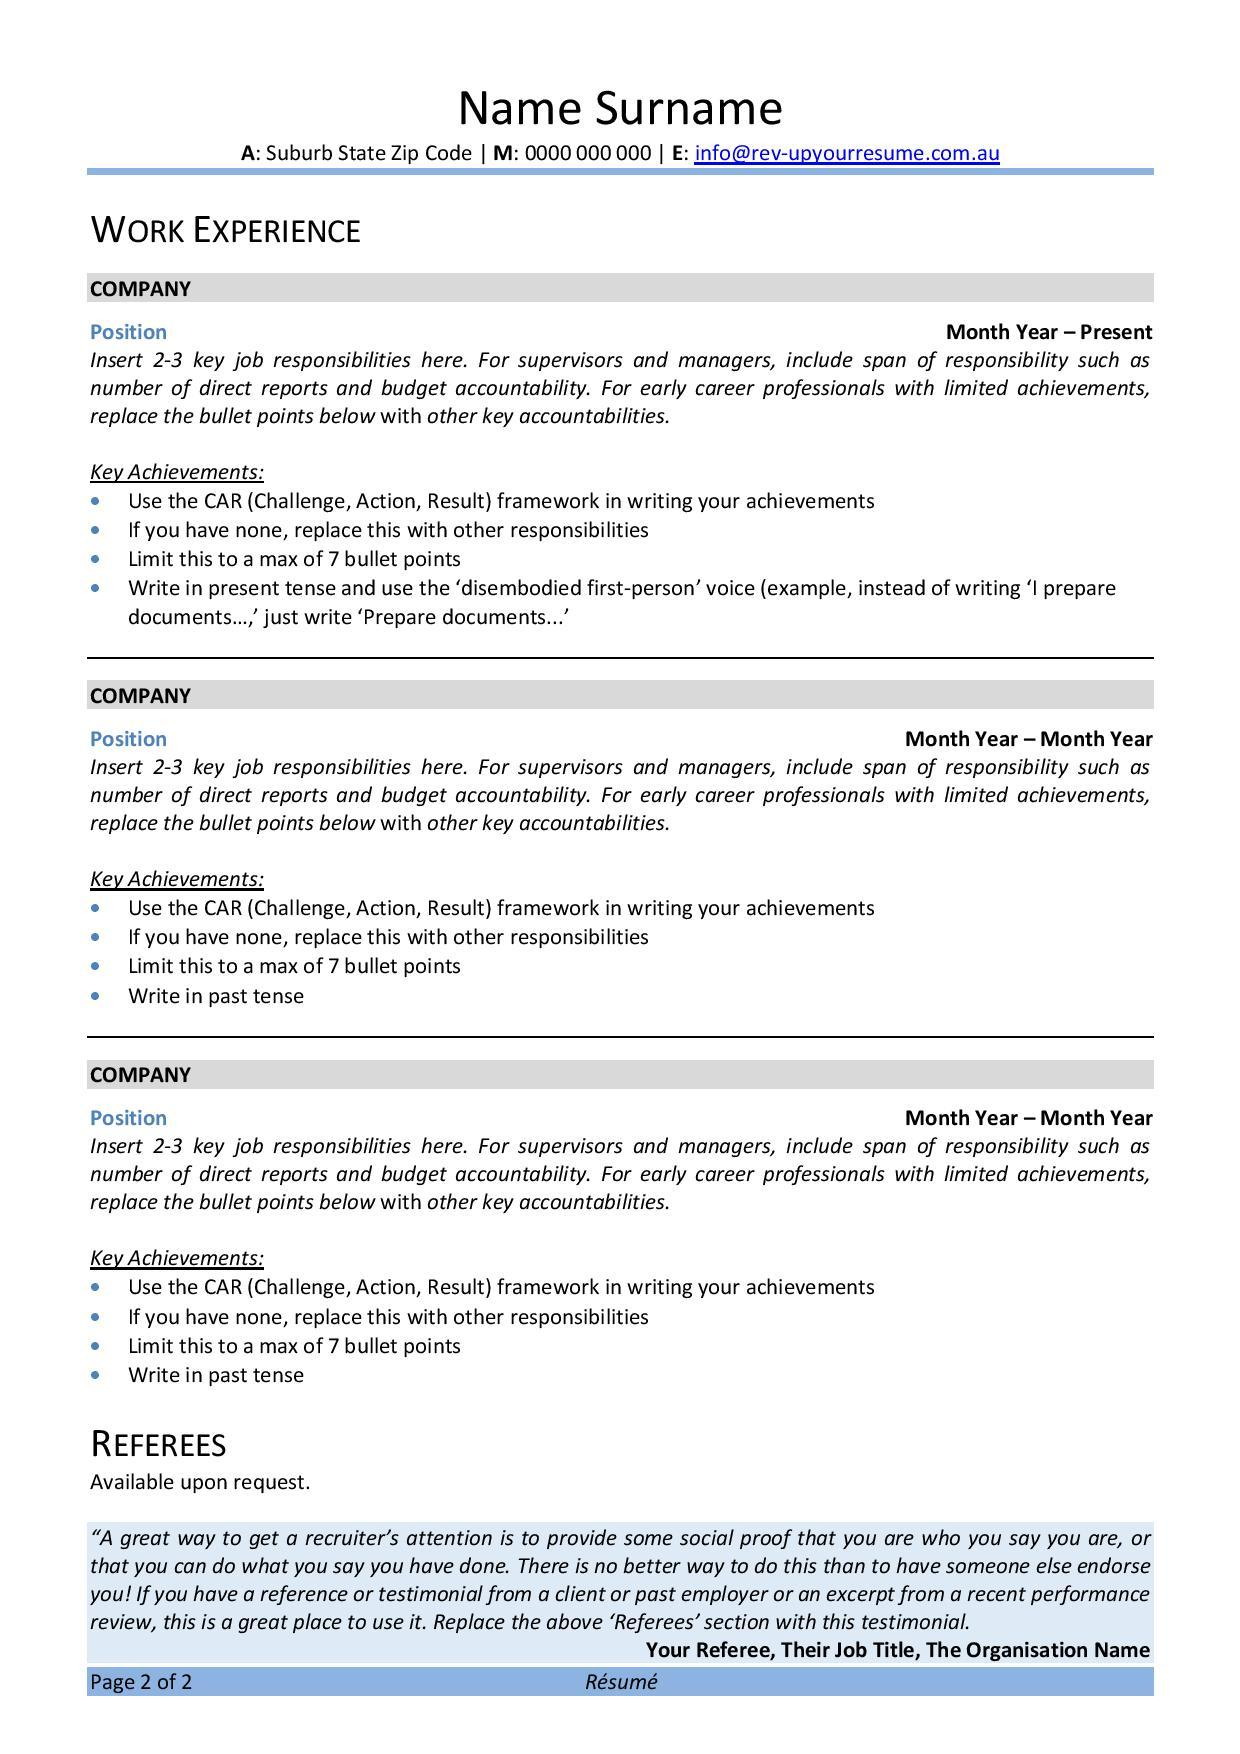 free australian resume template rev up your ats friendly covid objective for janitorial Resume Ats Friendly Resume Template Free 2020